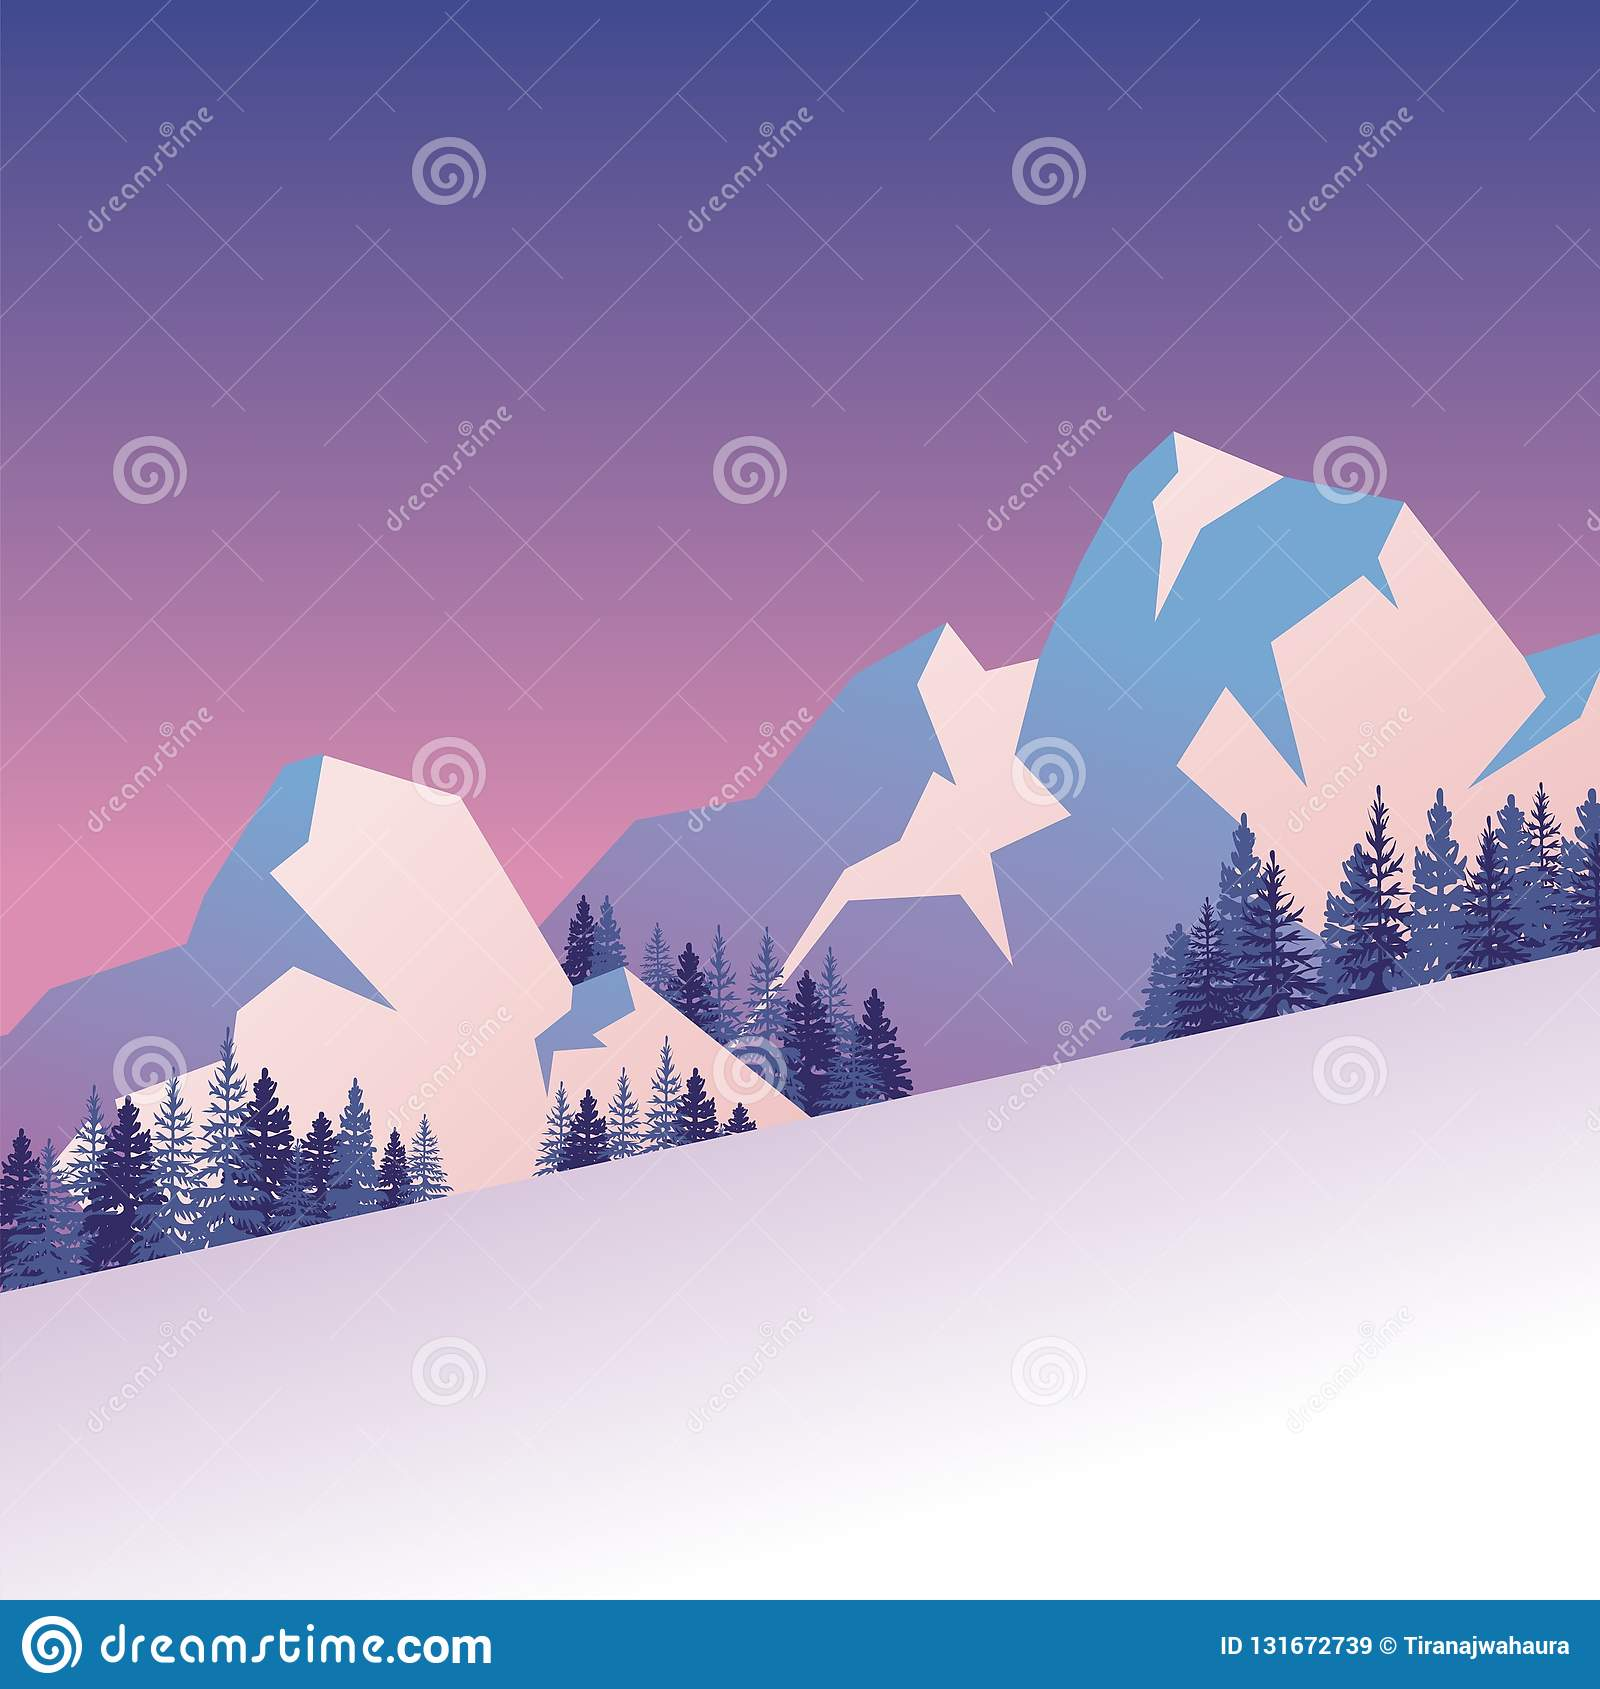 Winter Landscape with lovely scenery cartoon design